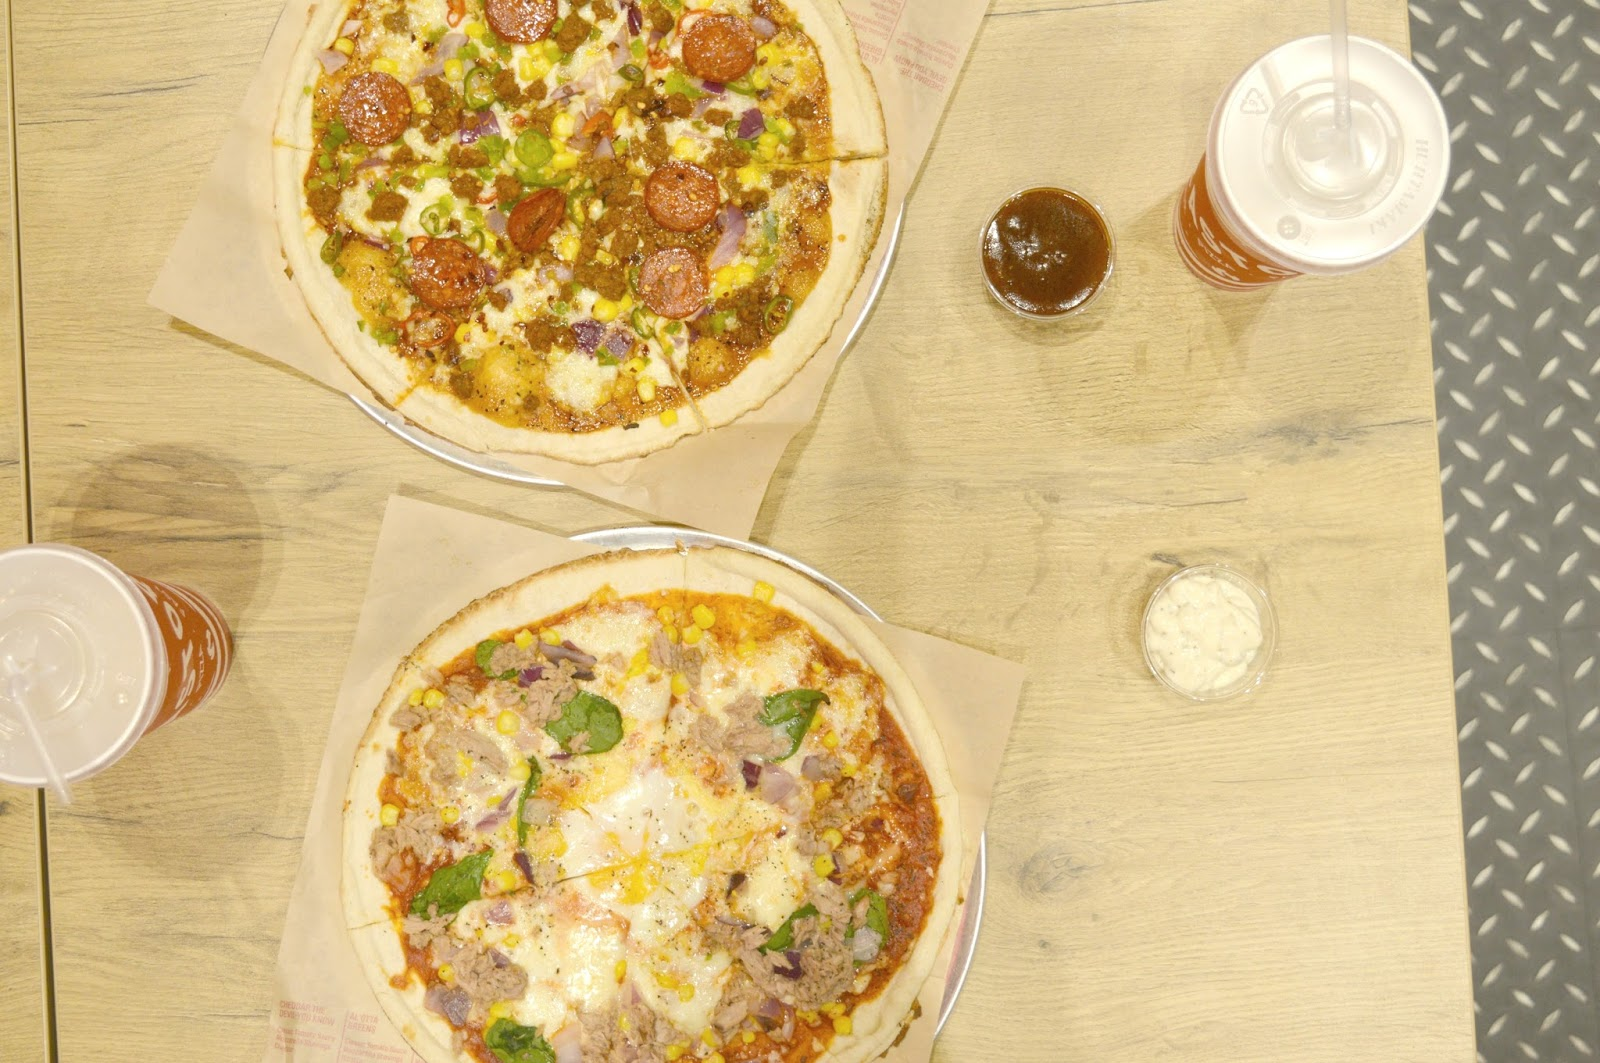 Intu Eldon Square: Grey's Quarter - PizzaStorm